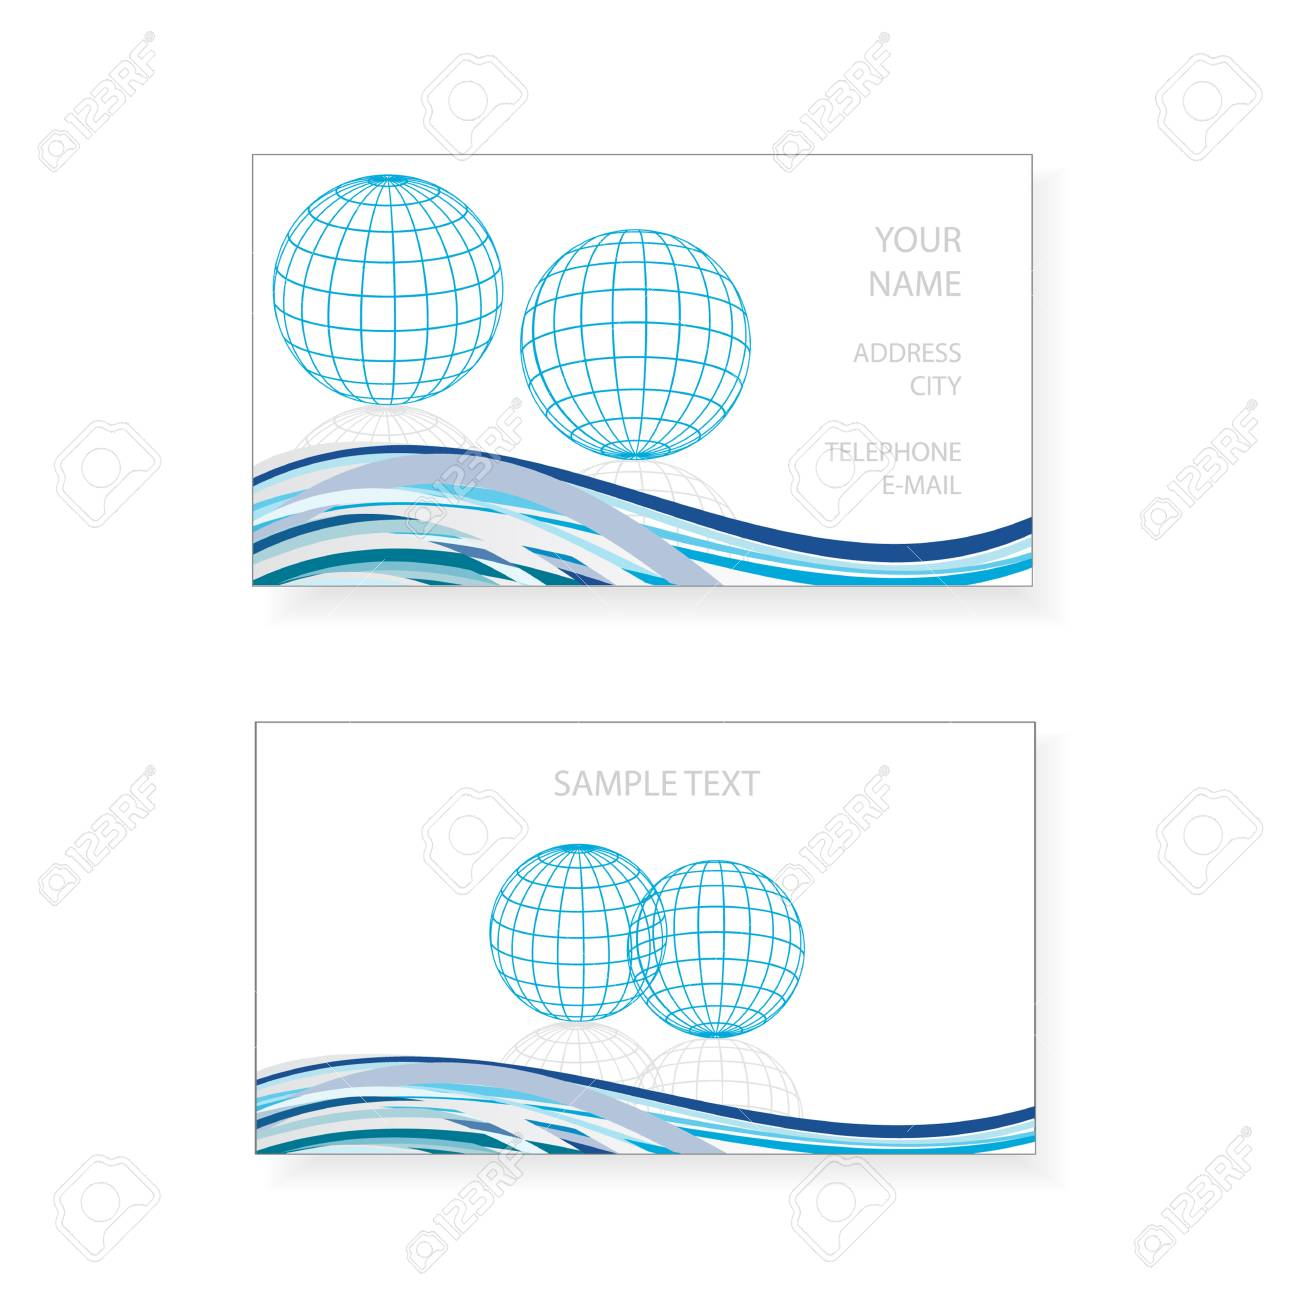 Business card design with earth globe icon royalty free cliparts business card design with earth globe icon stock vector 25098772 reheart Images